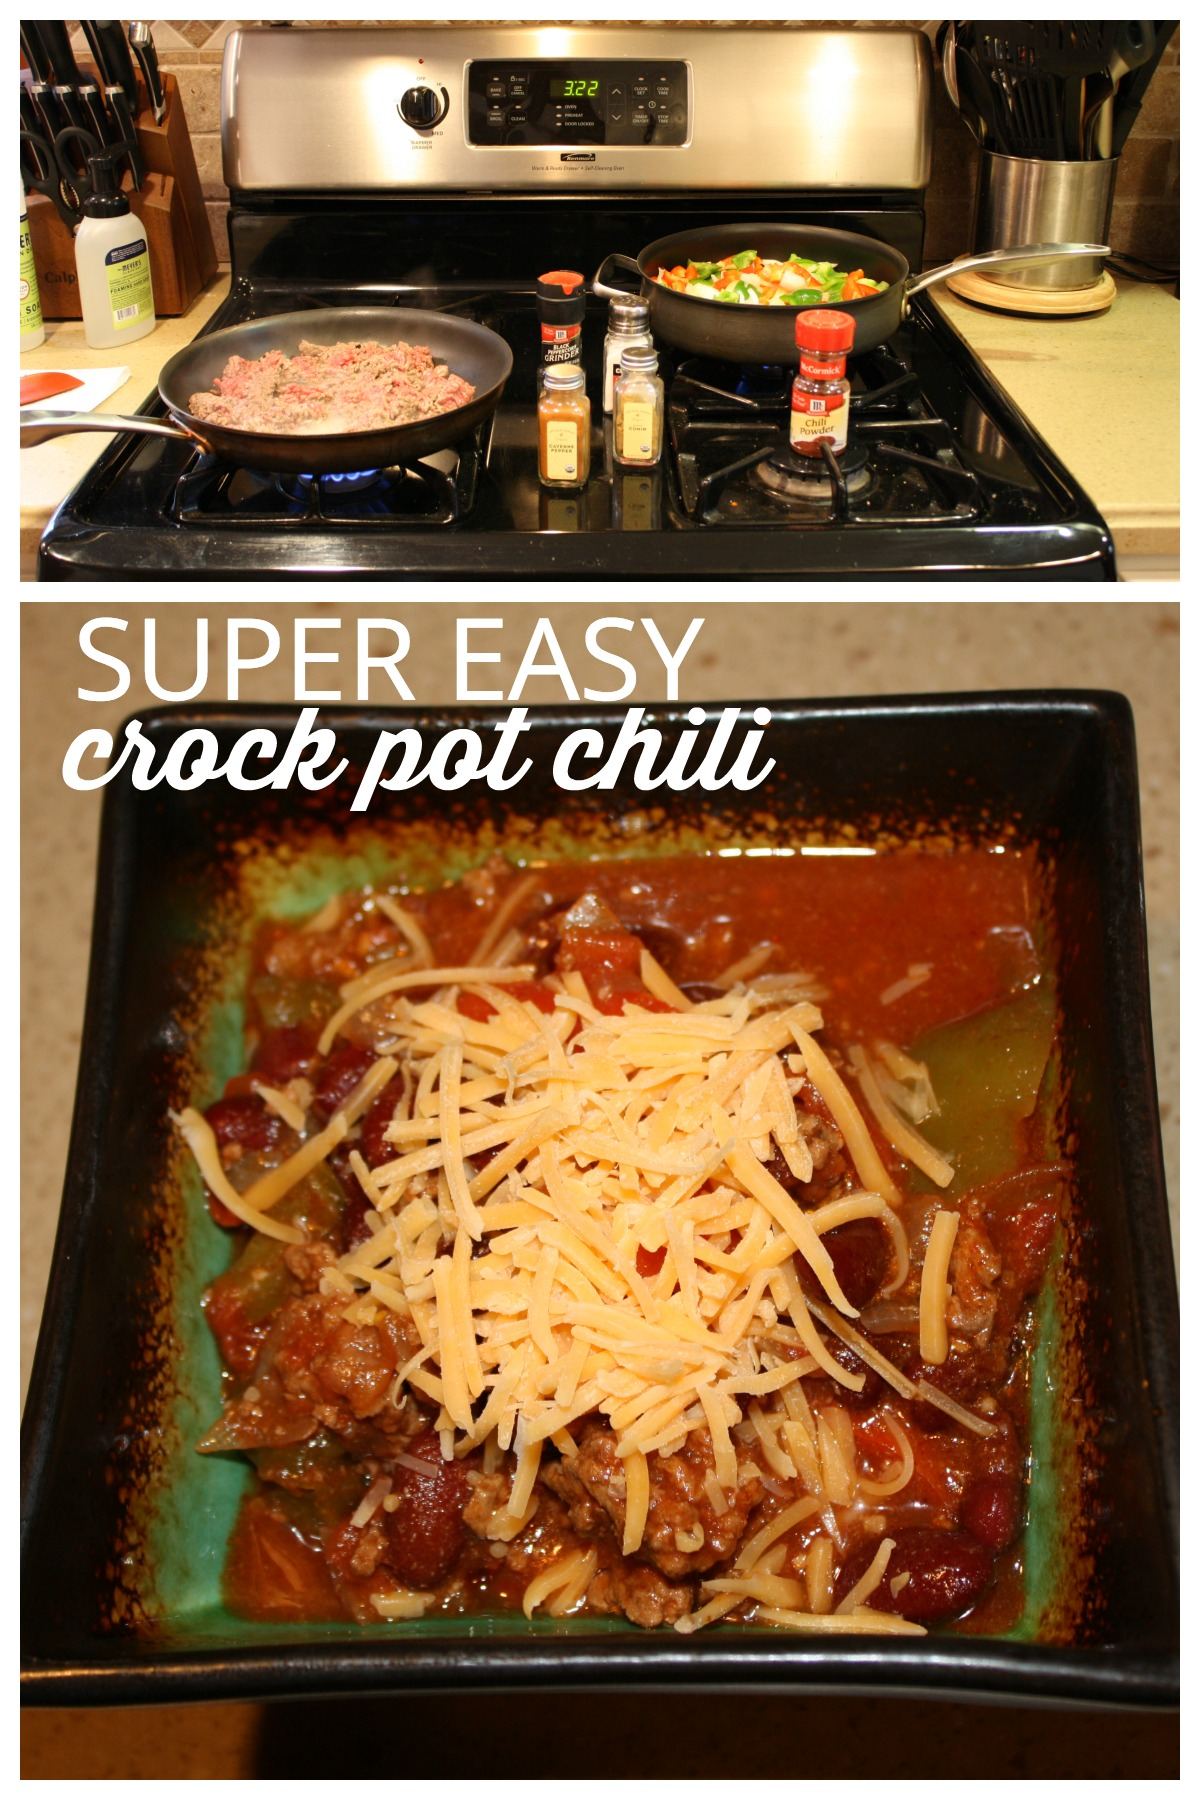 My Crock-Pot is my favorite kitchen gadget and really does save a working mom a lot of time. Here's my favorite easy crock pot chili recipe. Everyone loves this one!